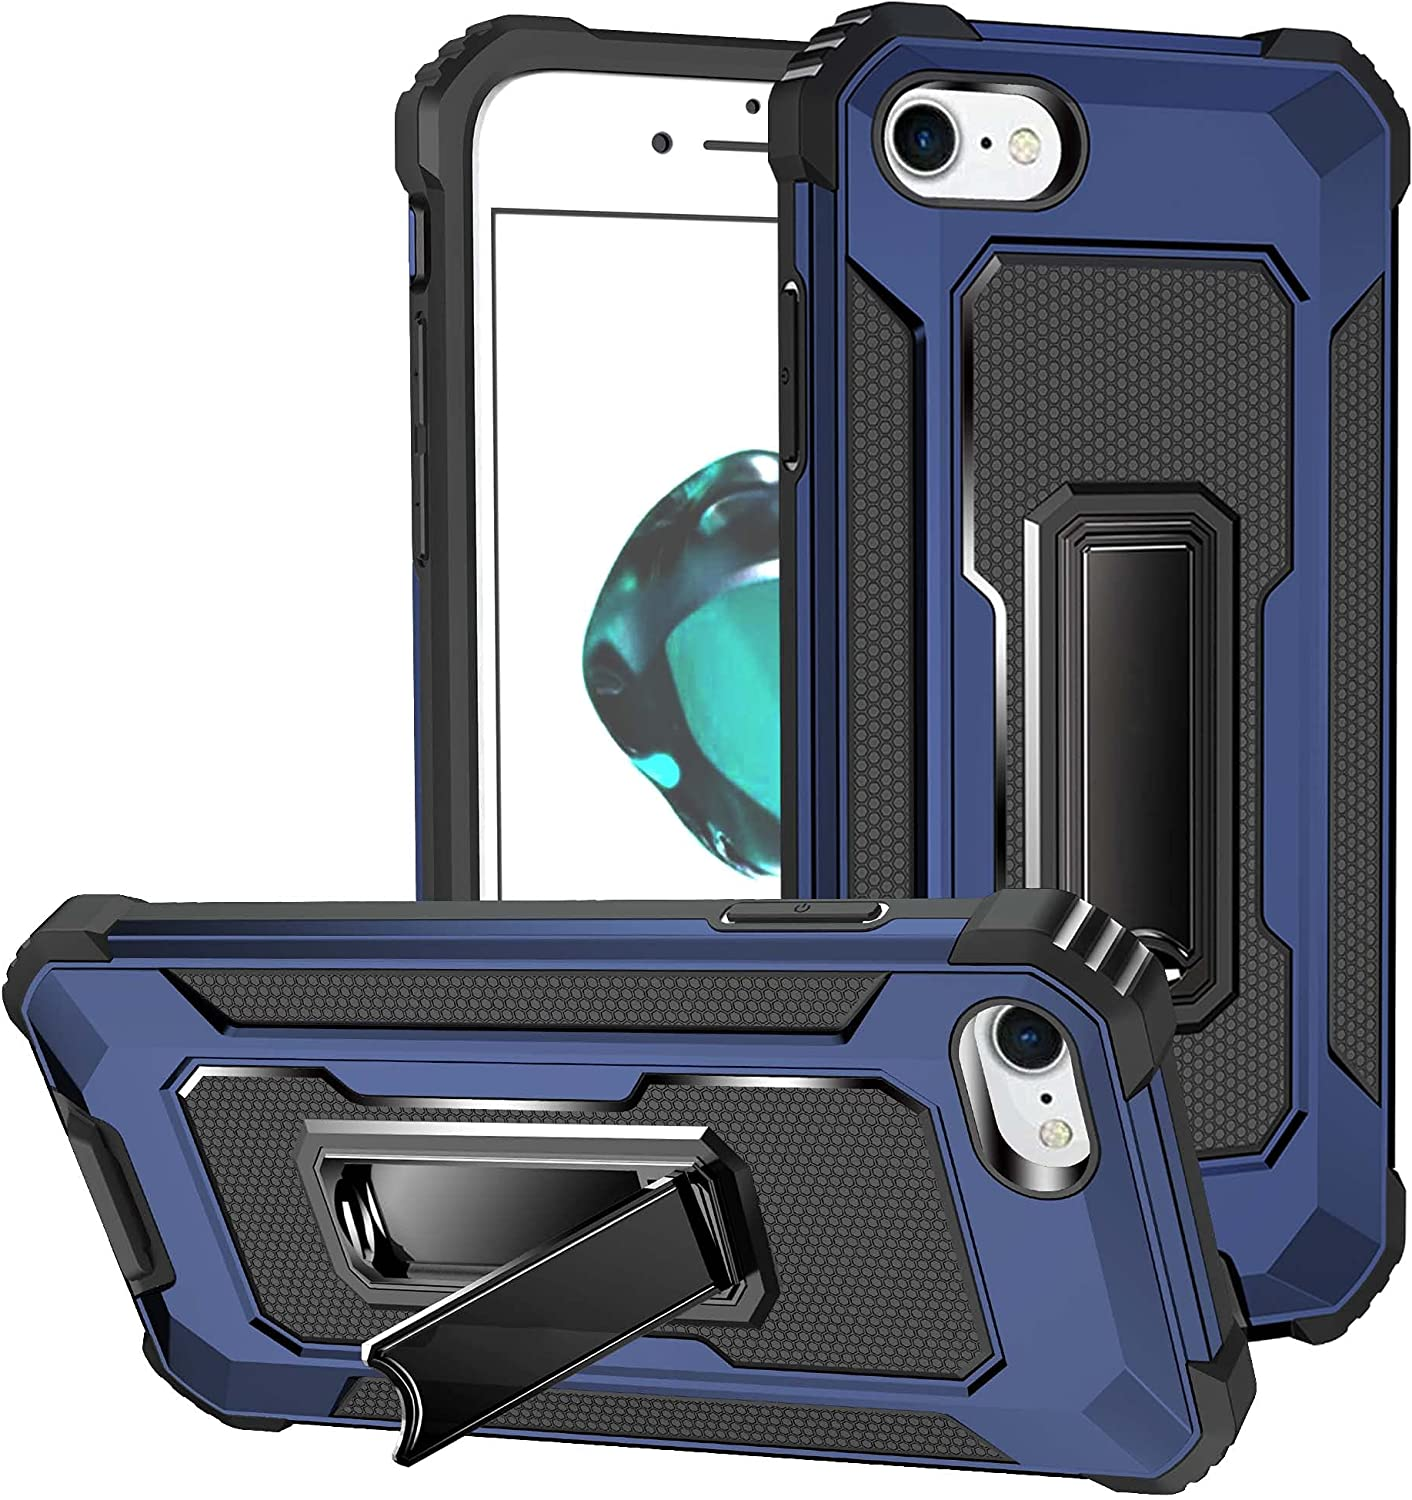 """AENLIG for iPhone 8 Plus Case, iPhone 7 Plus Case, iPhone 6s/ 6 Plus Case, Military Grade Heavy Duty Armor Shockproof Anti-Drop with Built-in Kickstand for iPhone 6/6s/7/8 Plus 5.5"""" (Dark Blue)"""